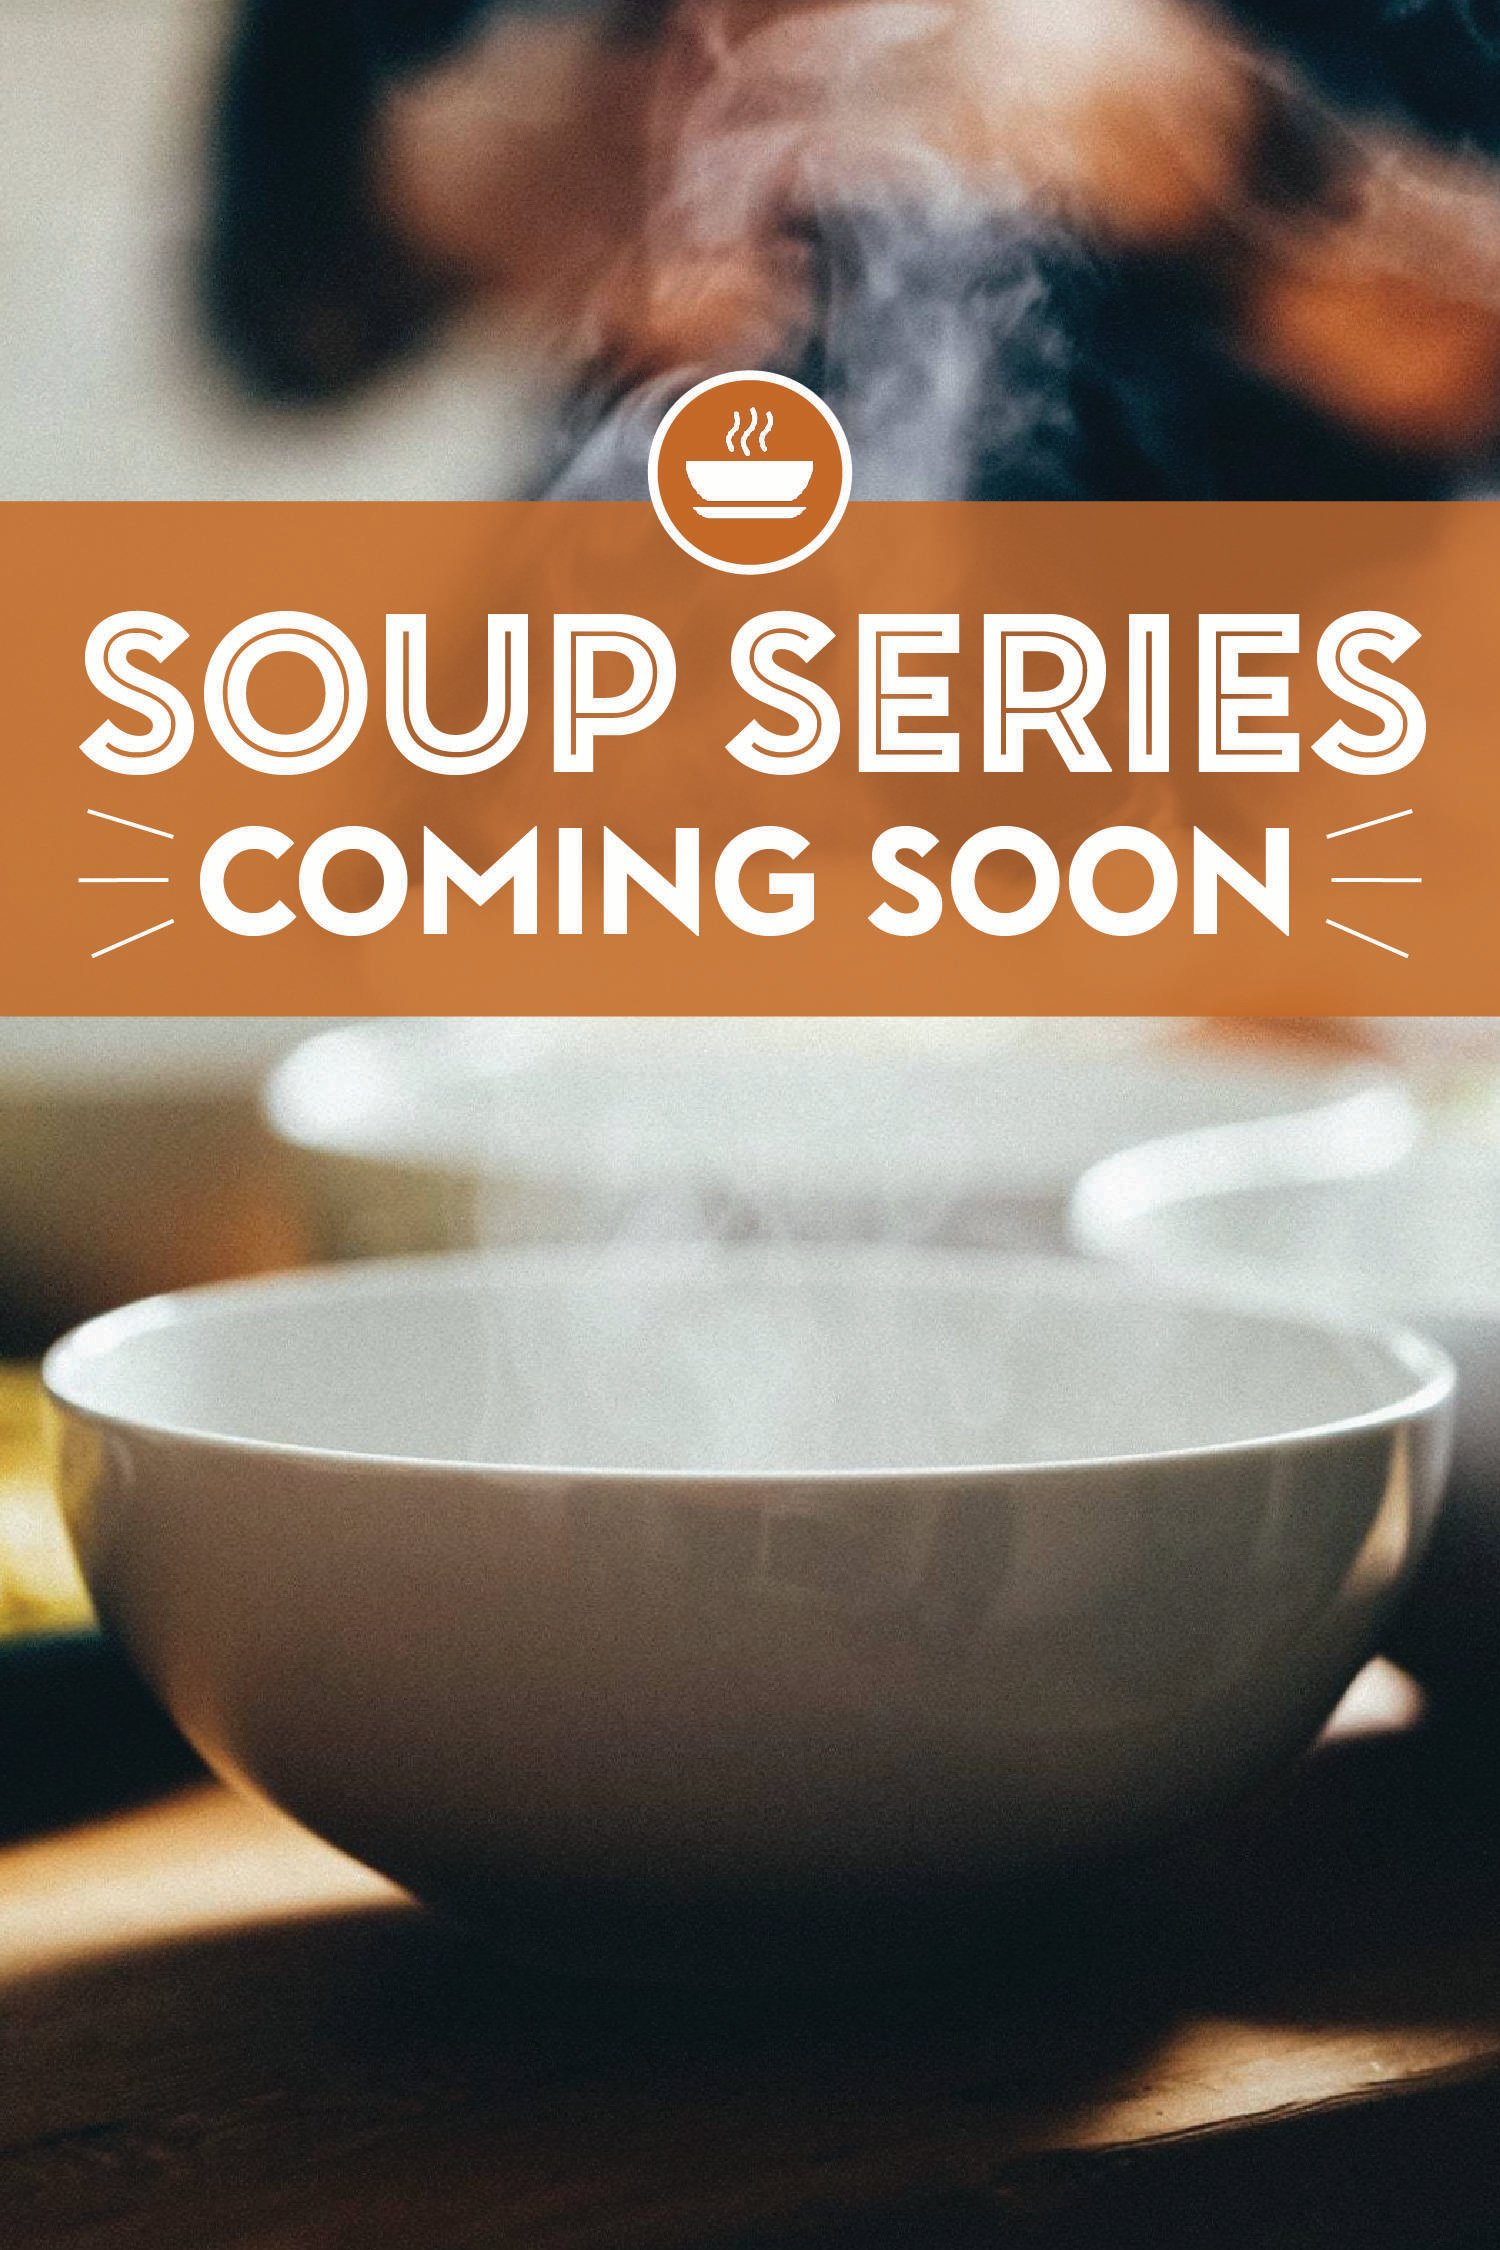 Teaser photo of a steaming bowl of soup to kick off the soup series!